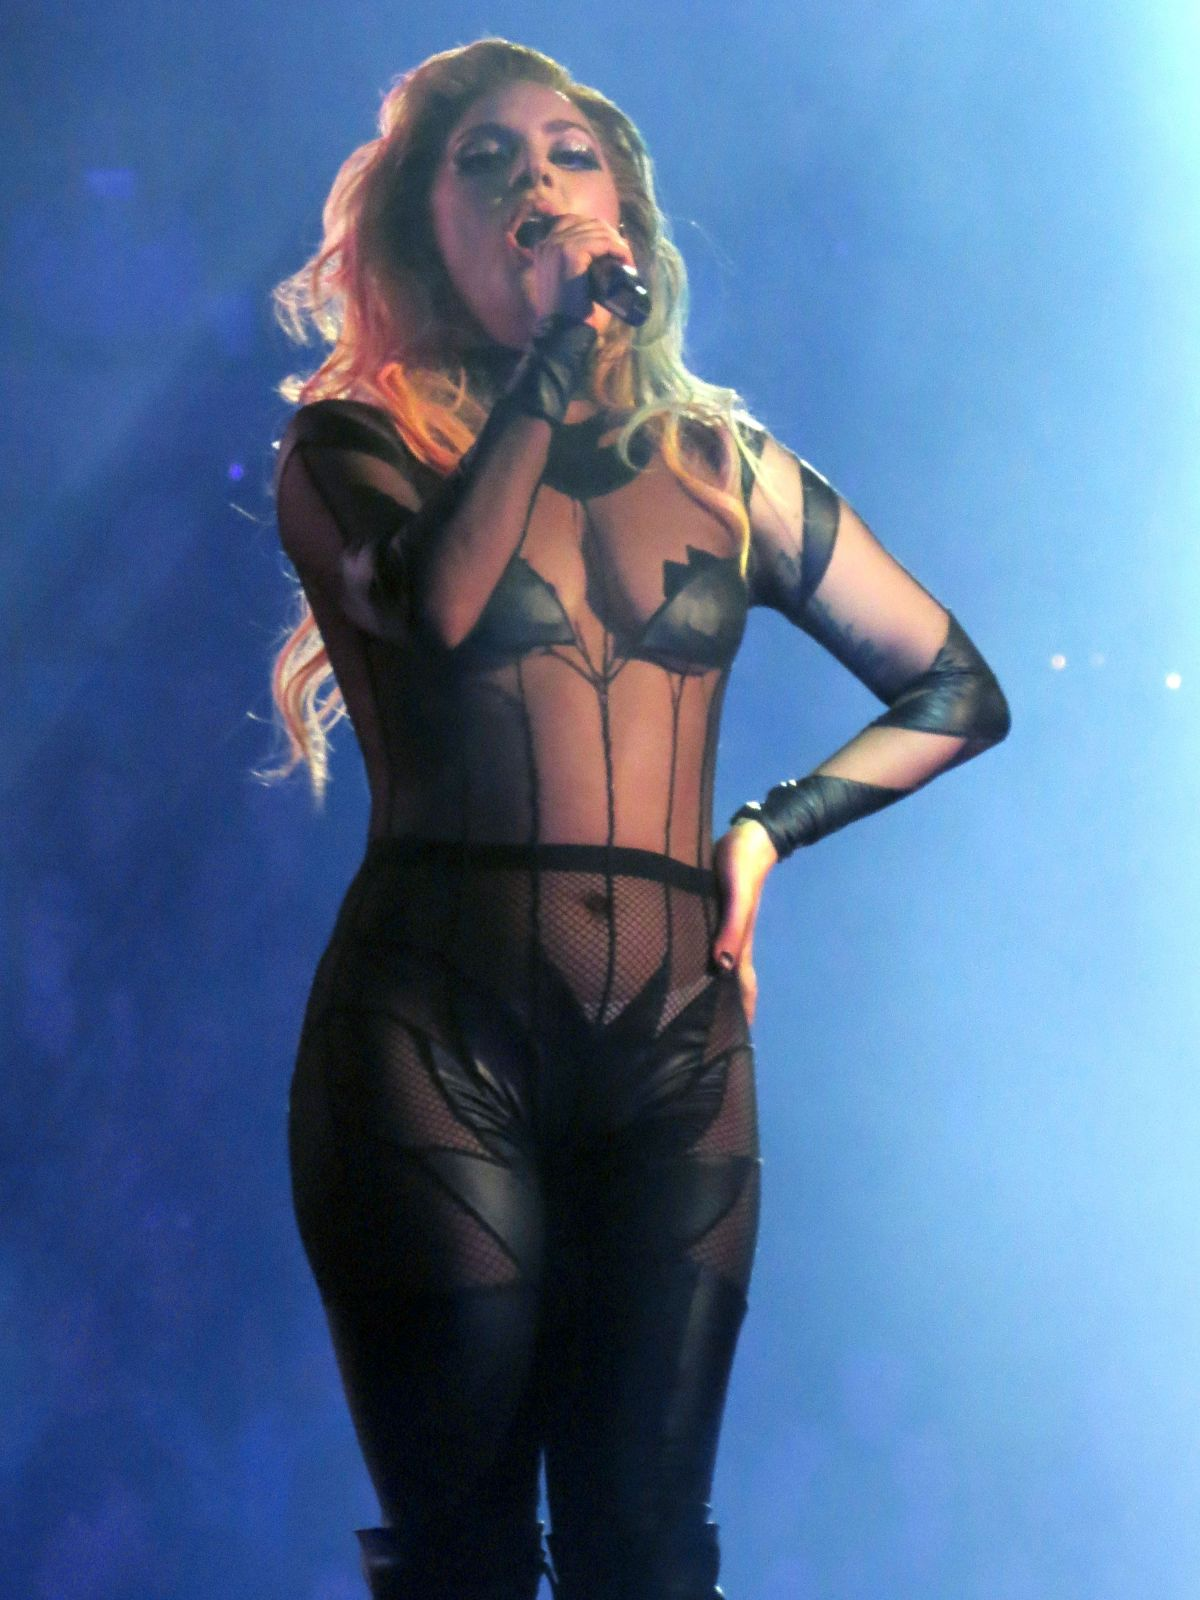 lady-gaga-performs-at-joanne-world-tour-